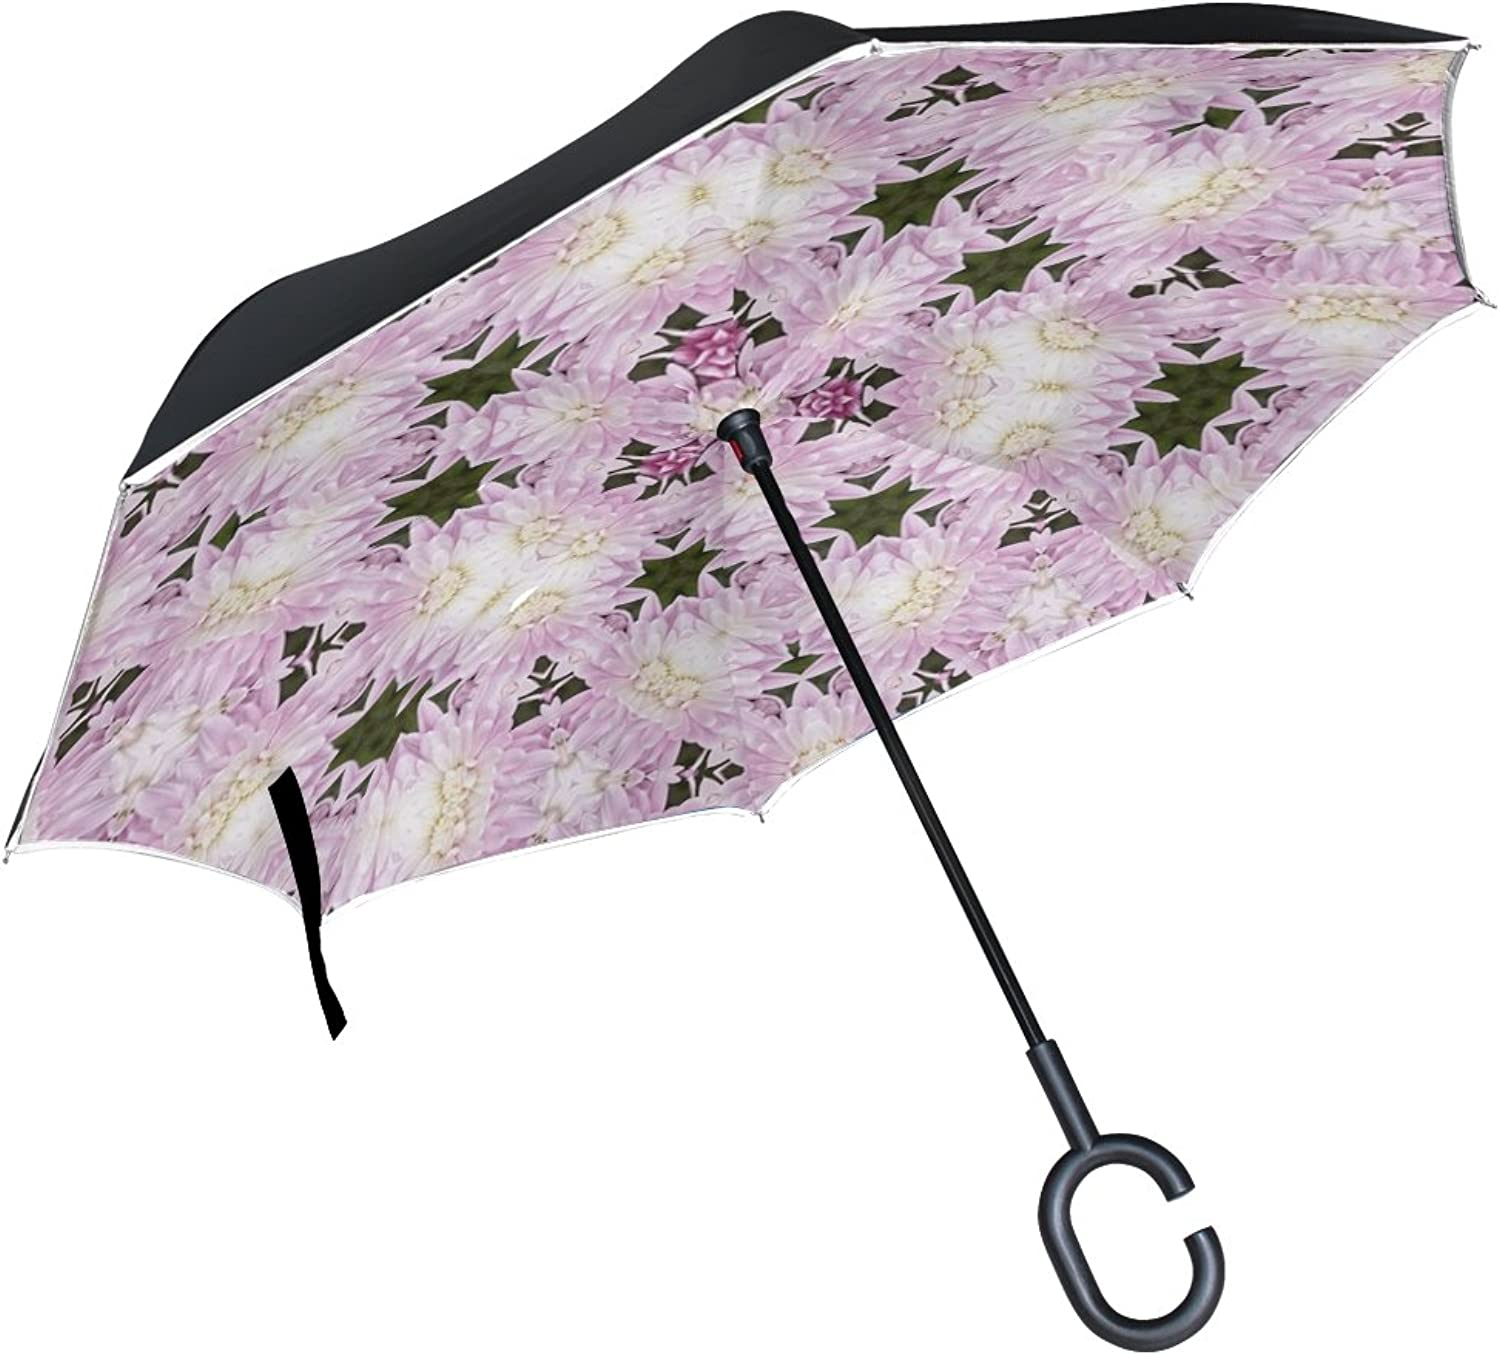 Double Layer Ingreened Flower Nature Plant Floral color Umbrellas Reverse Folding Umbrella Windproof Uv Predection Big Straight Umbrella for Car Rain Outdoor with CShaped Handle